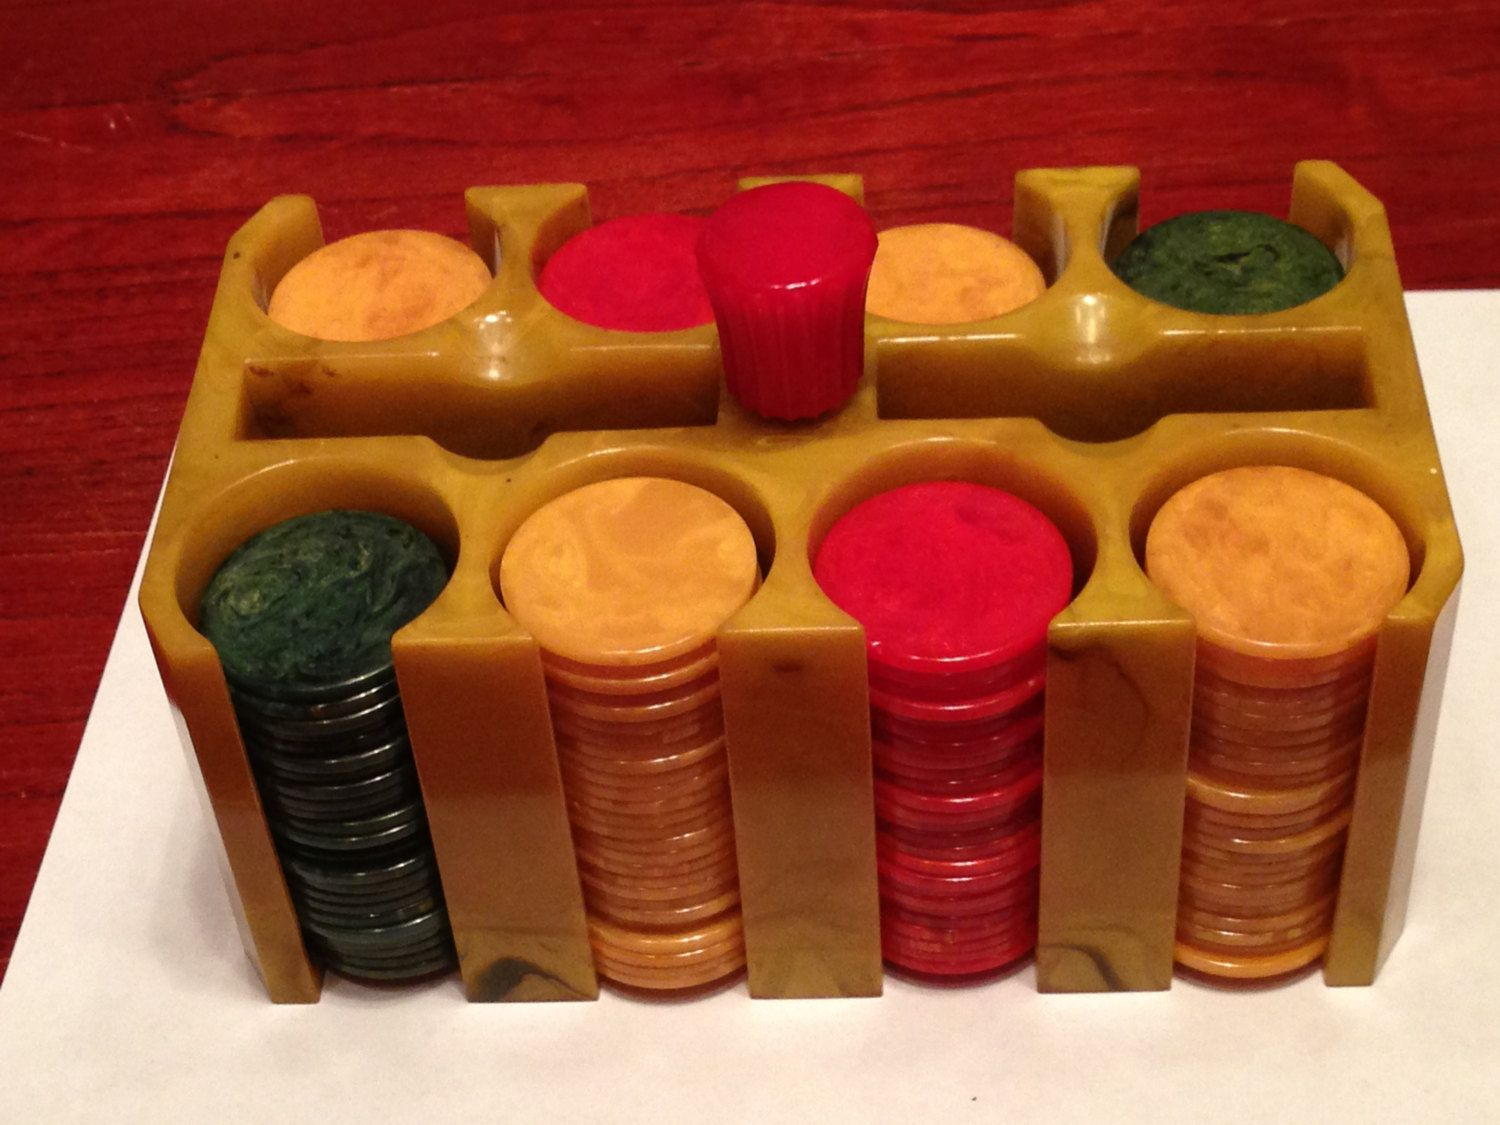 Beautiful Set of 200 Catalin Bakelite Poker Chips in a Butterscotch and Chocolate Swirl Bakelite Poker Chip Caddy by MainlyManlyAntiques on Etsy https://www.etsy.com/listing/155968372/beautiful-set-of-200-catalin-bakelite